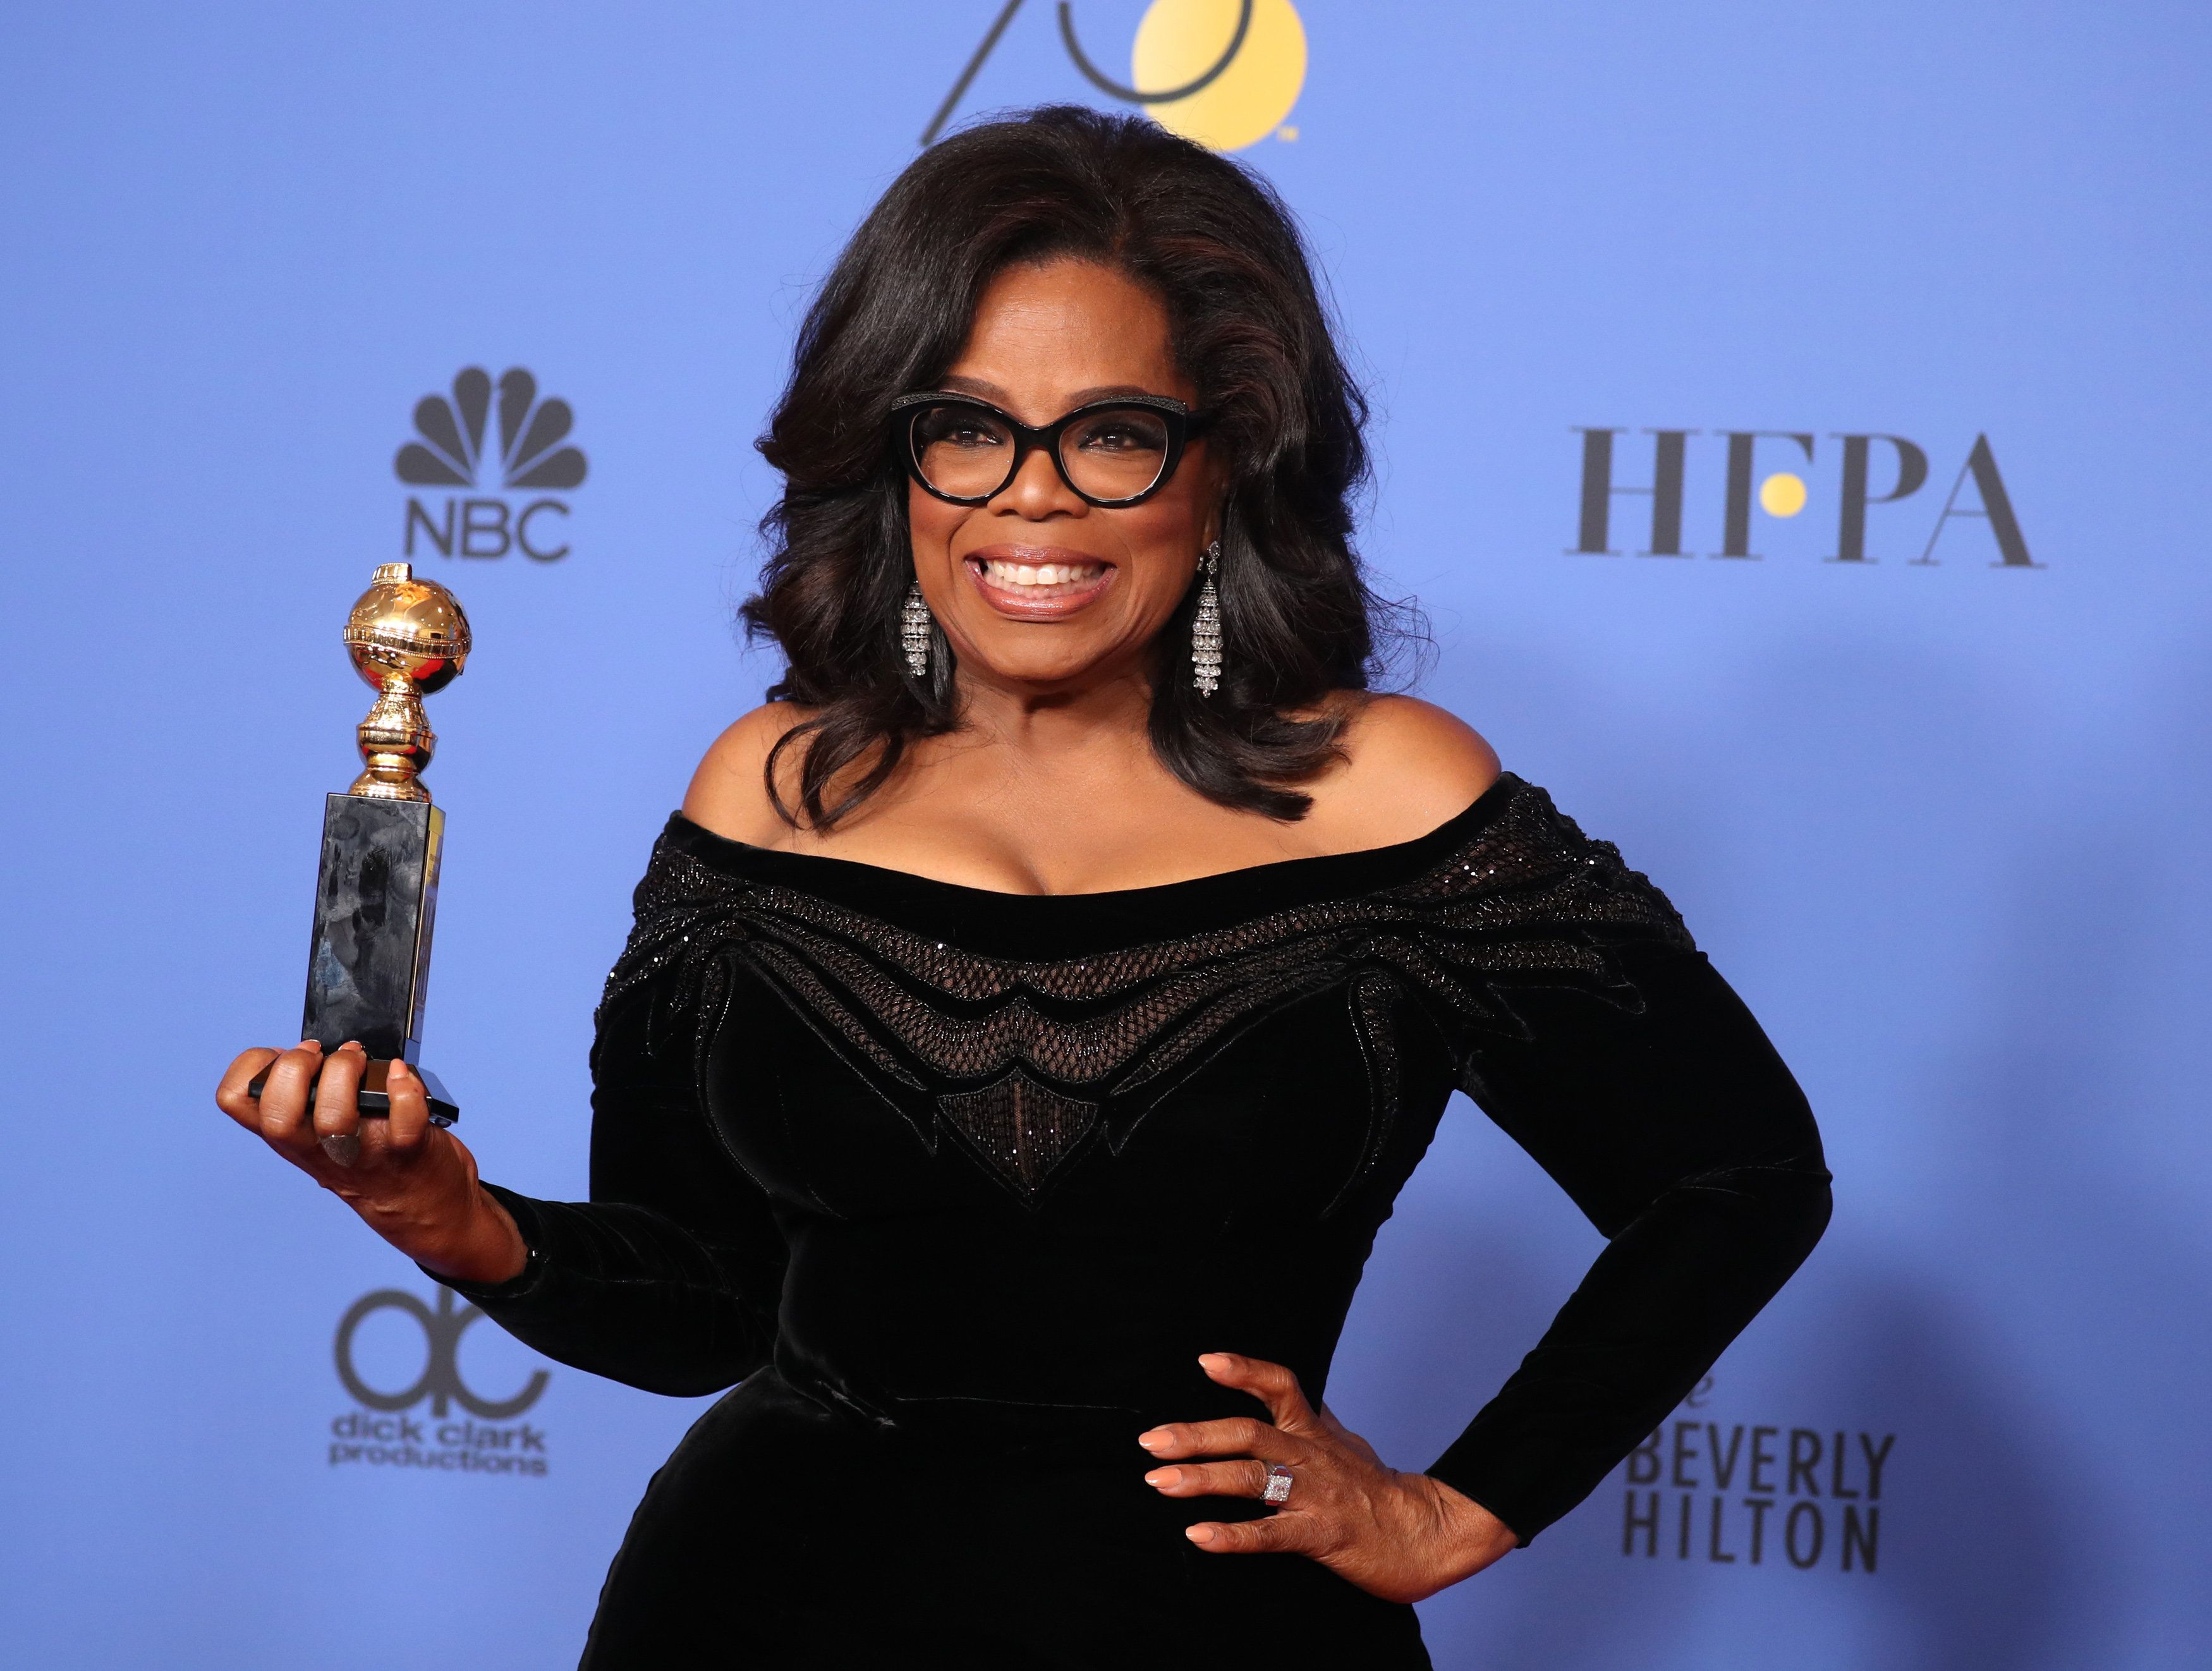 <strong>Daniel met Oprah at the Golden Globes </strong>